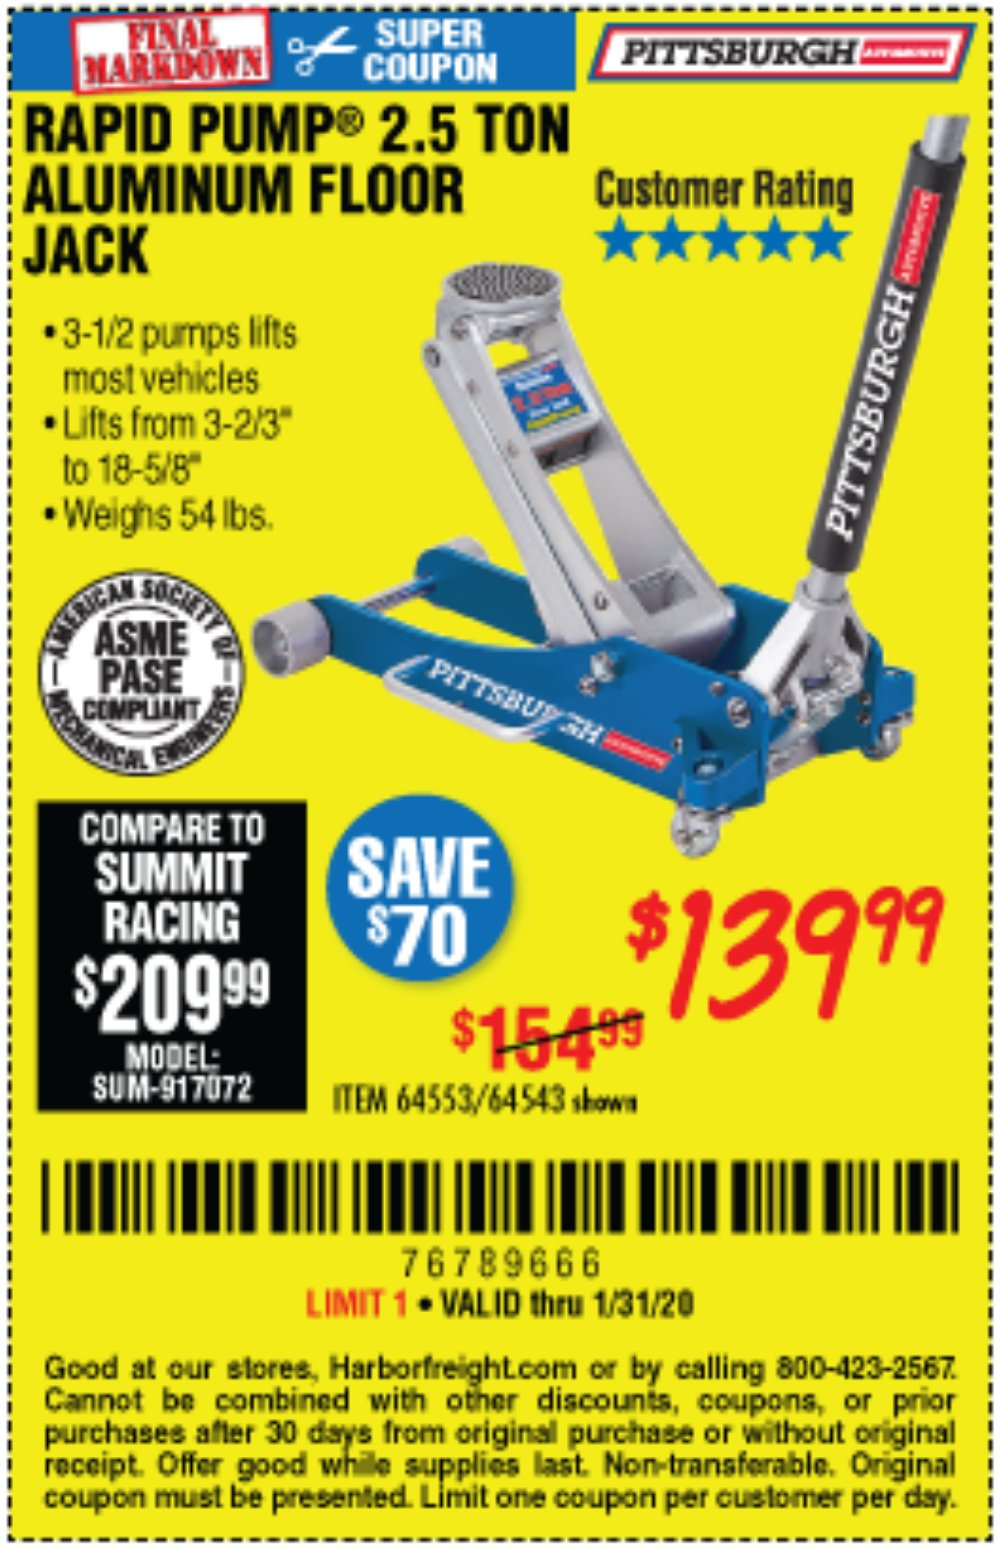 Harbor Freight Coupon, HF Coupons - 64543